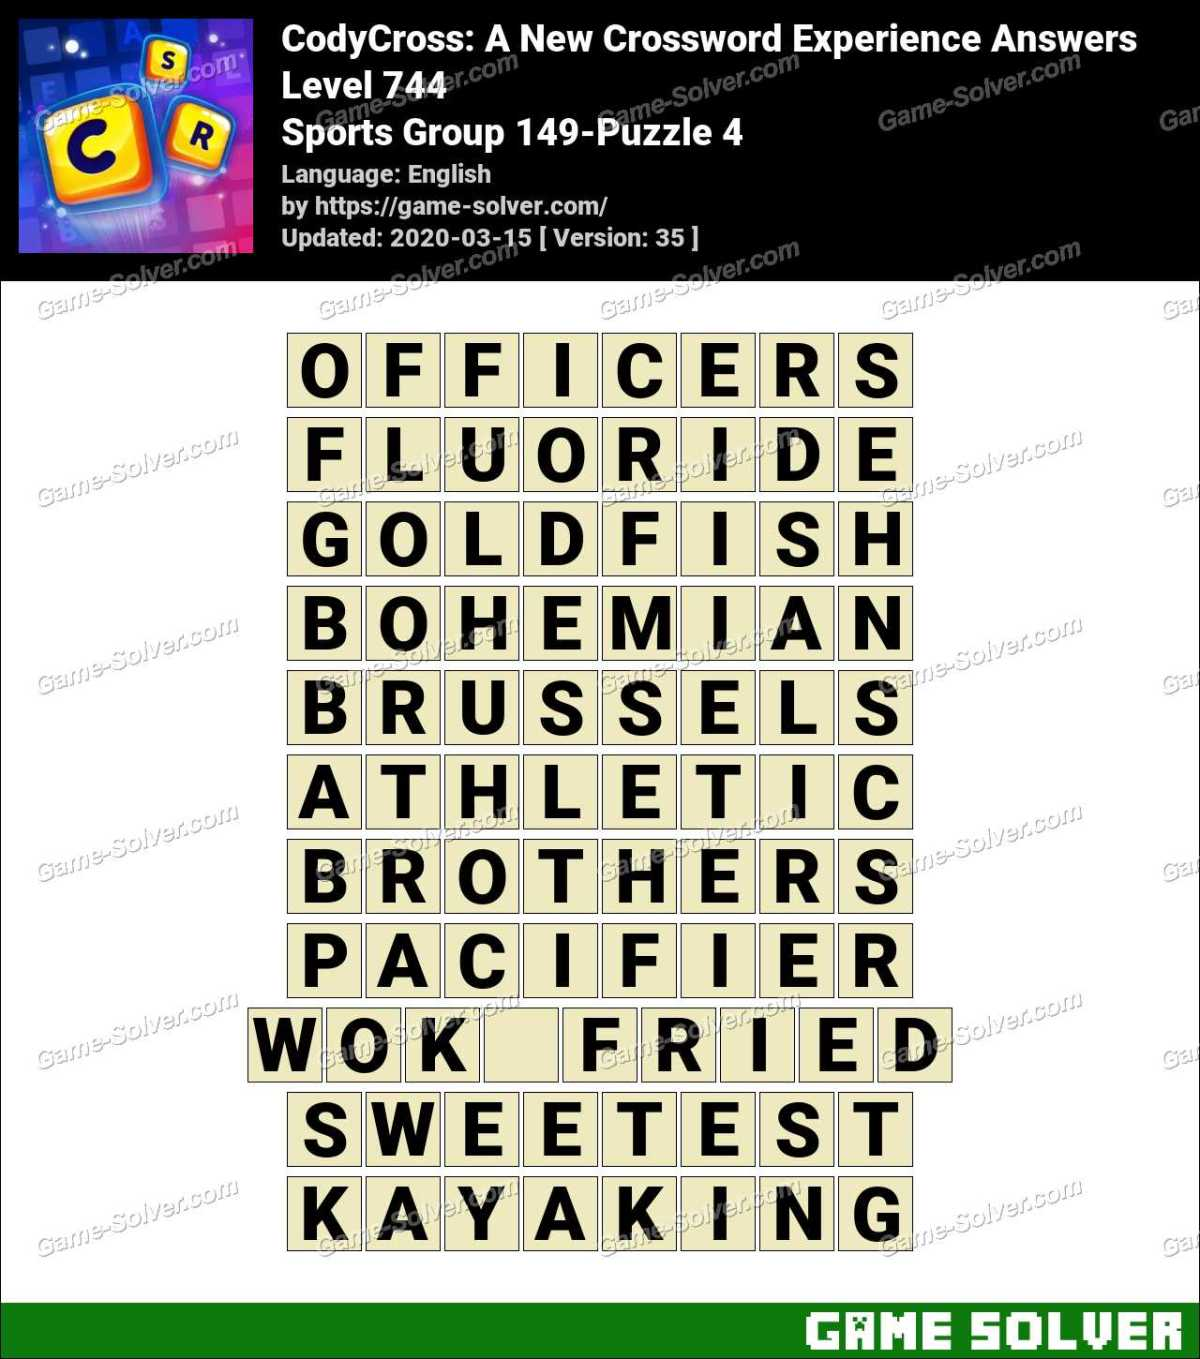 CodyCross Sports Group 149-Puzzle 4 Answers